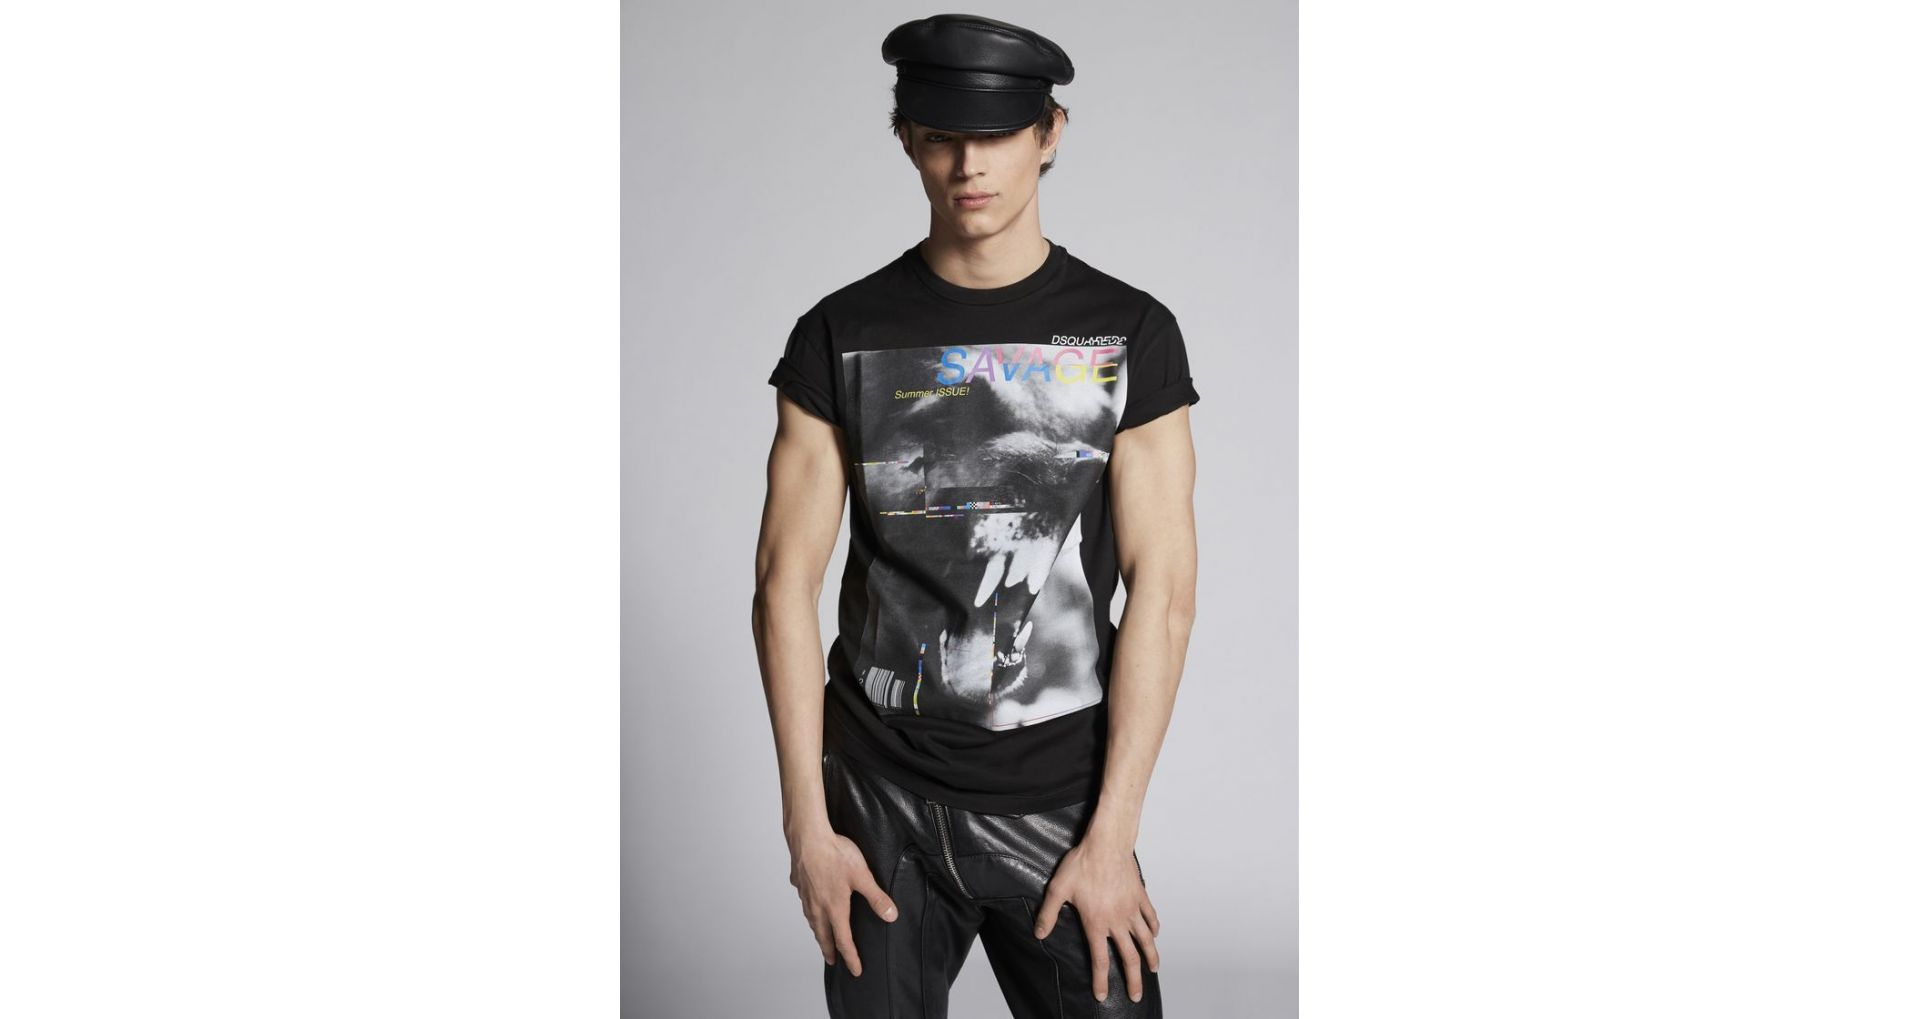 Discover new collections of t-shirts for men